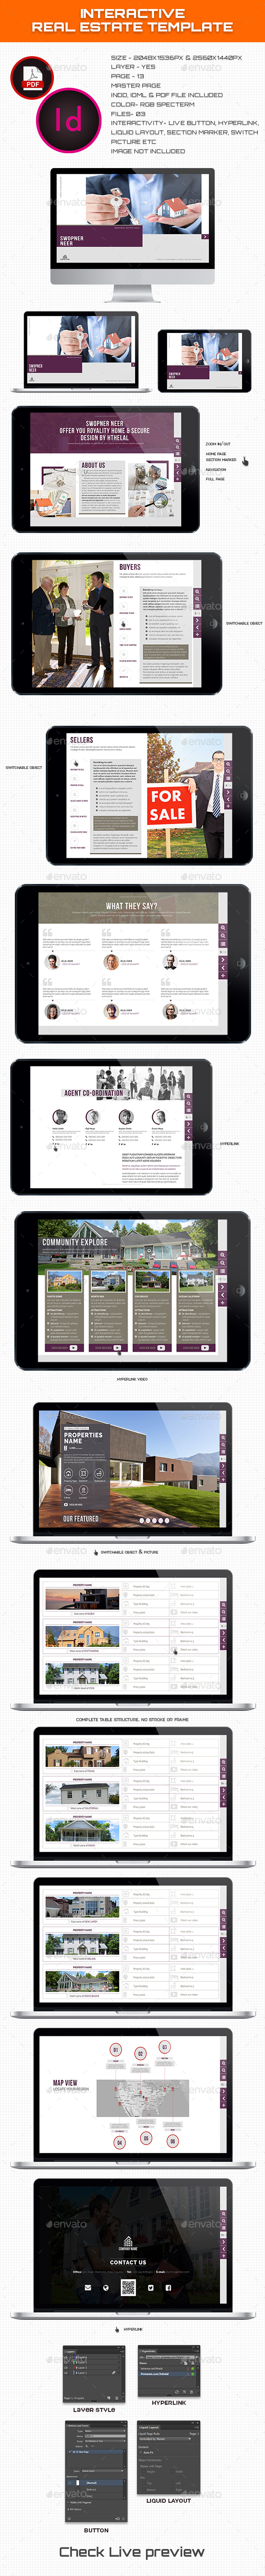 Interactive Real Estate Template - ePublishing